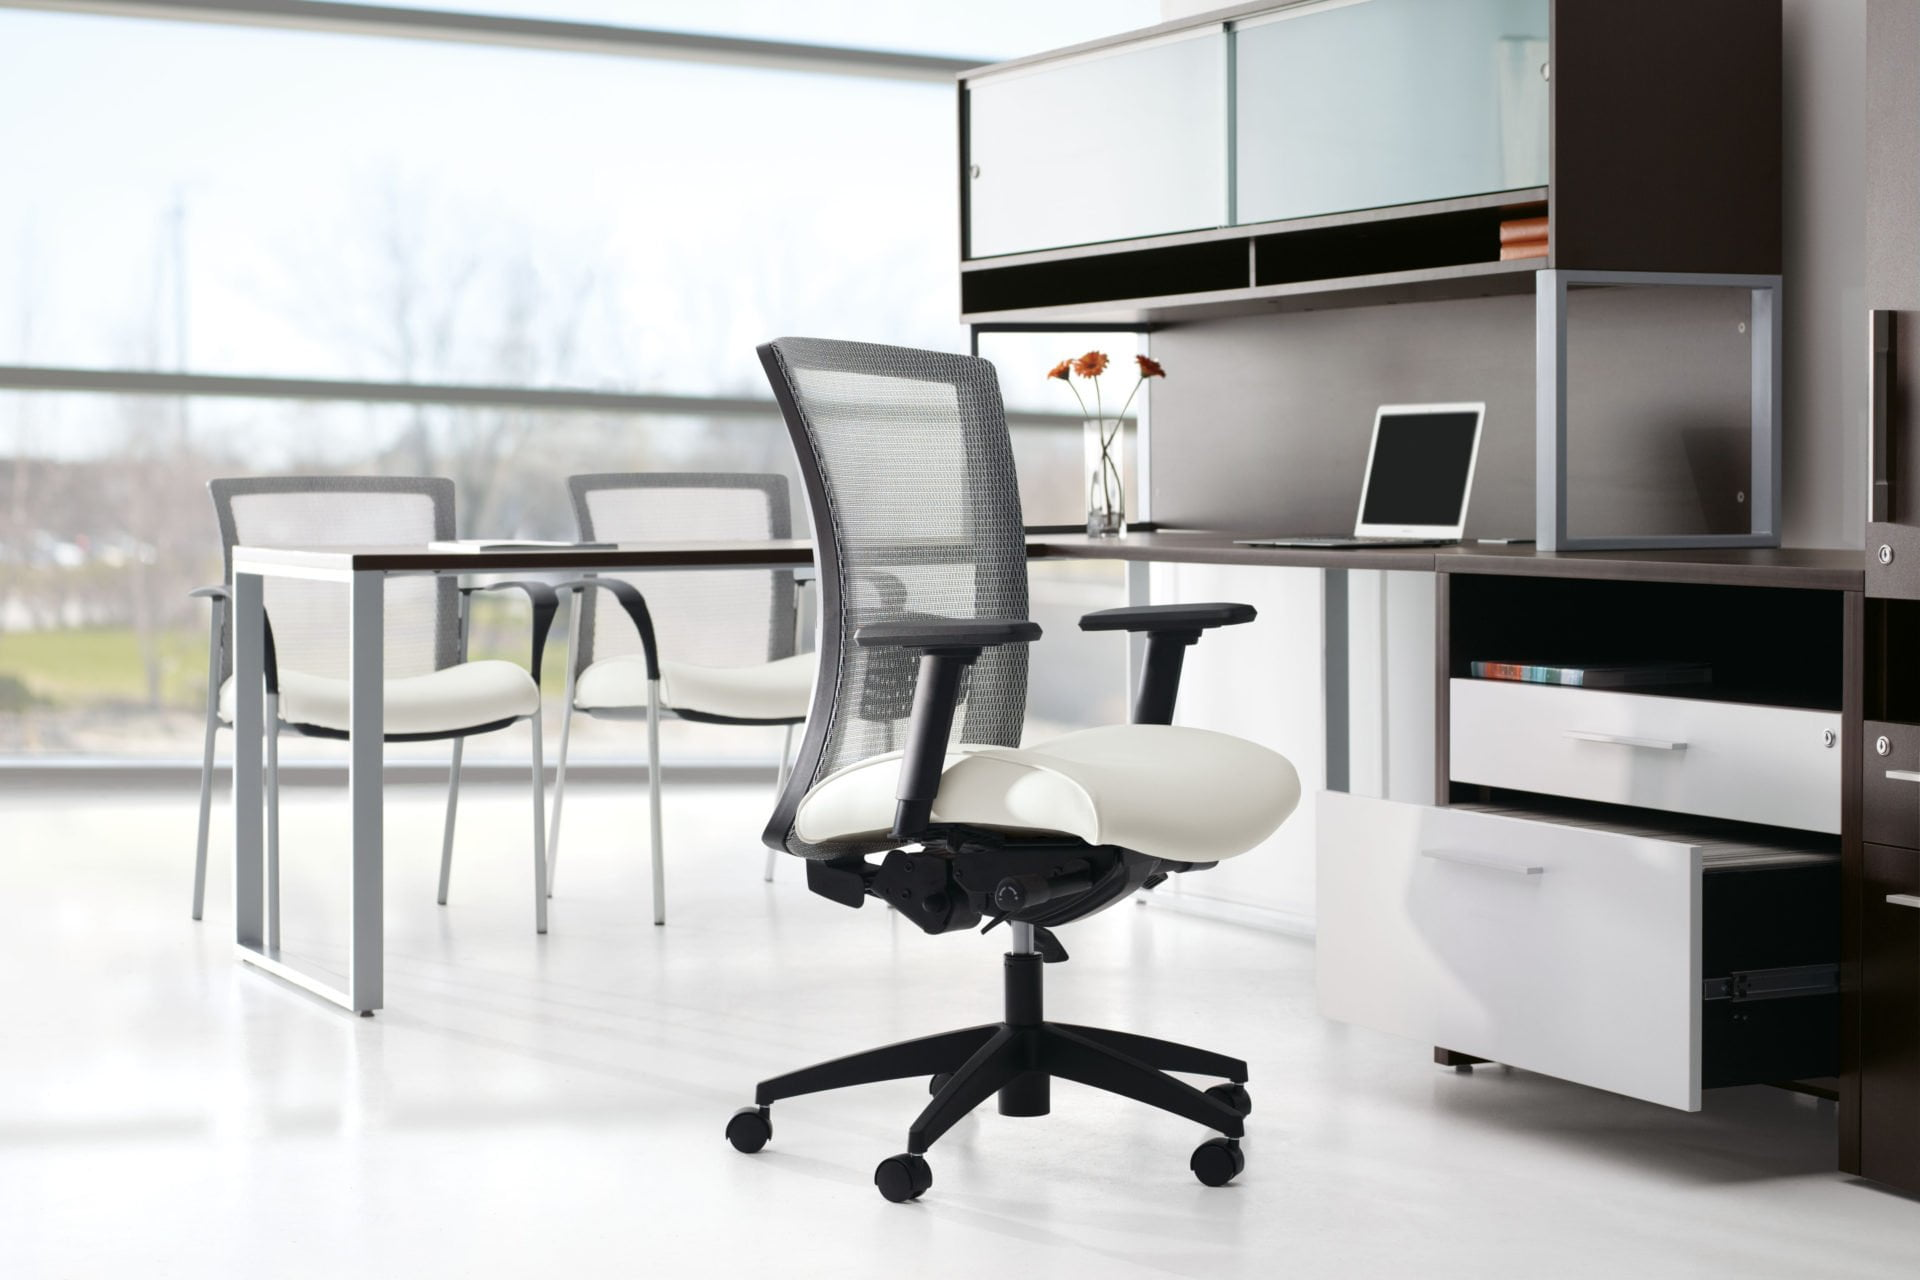 64 office furniture liquidators houston texas for K furniture houston